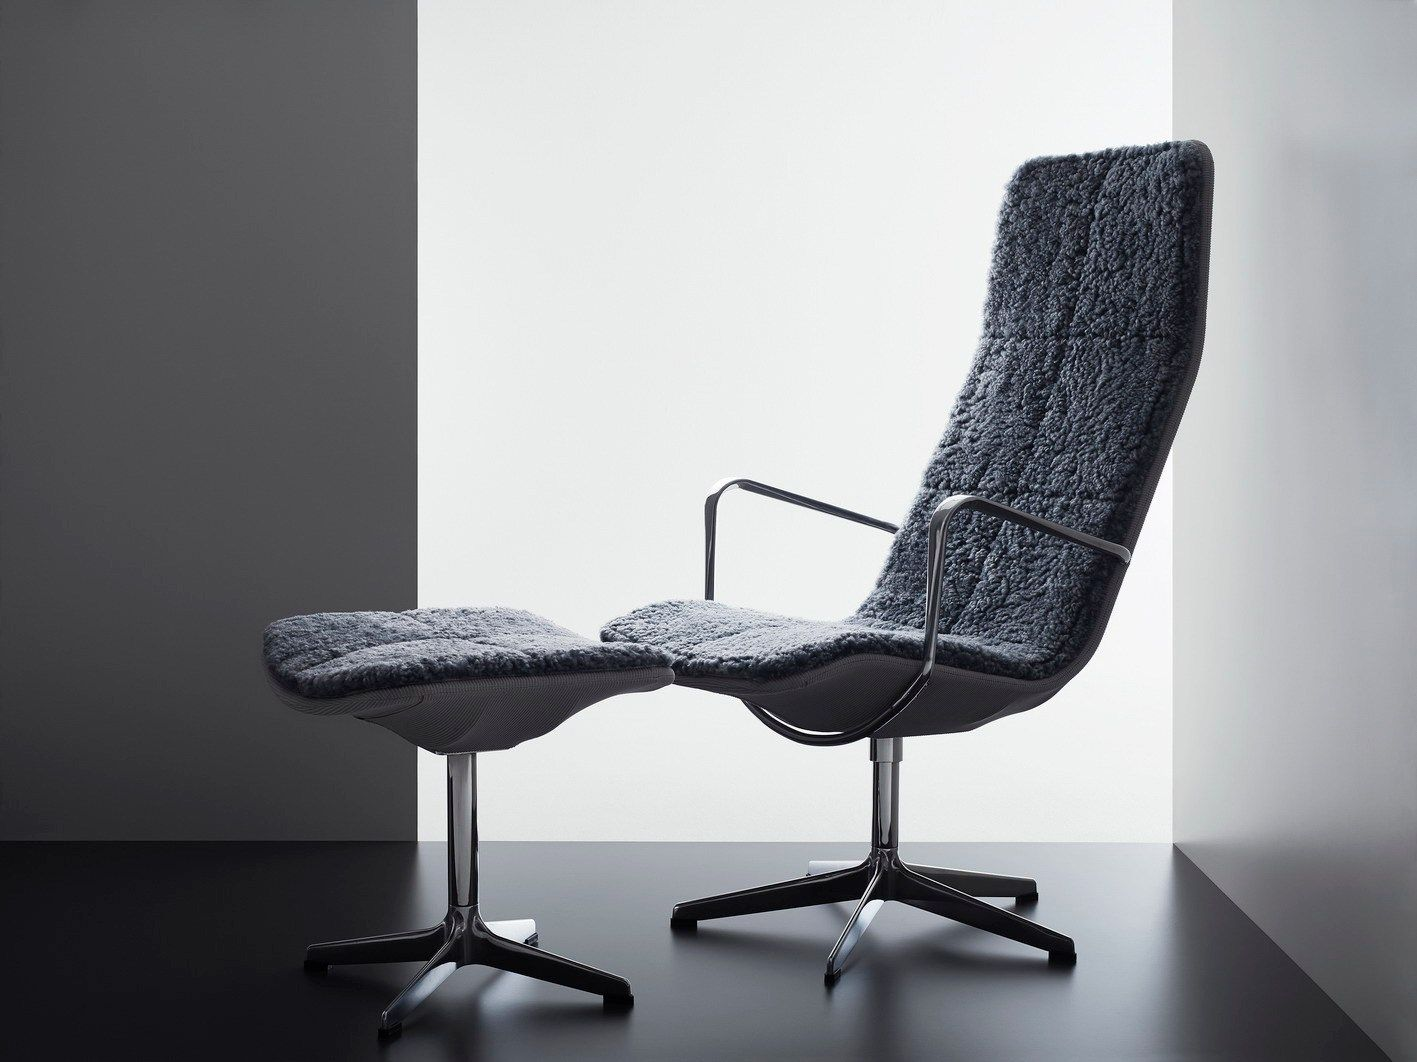 Swedese introduces brand new collections at Clerkenwell Design Week 2014